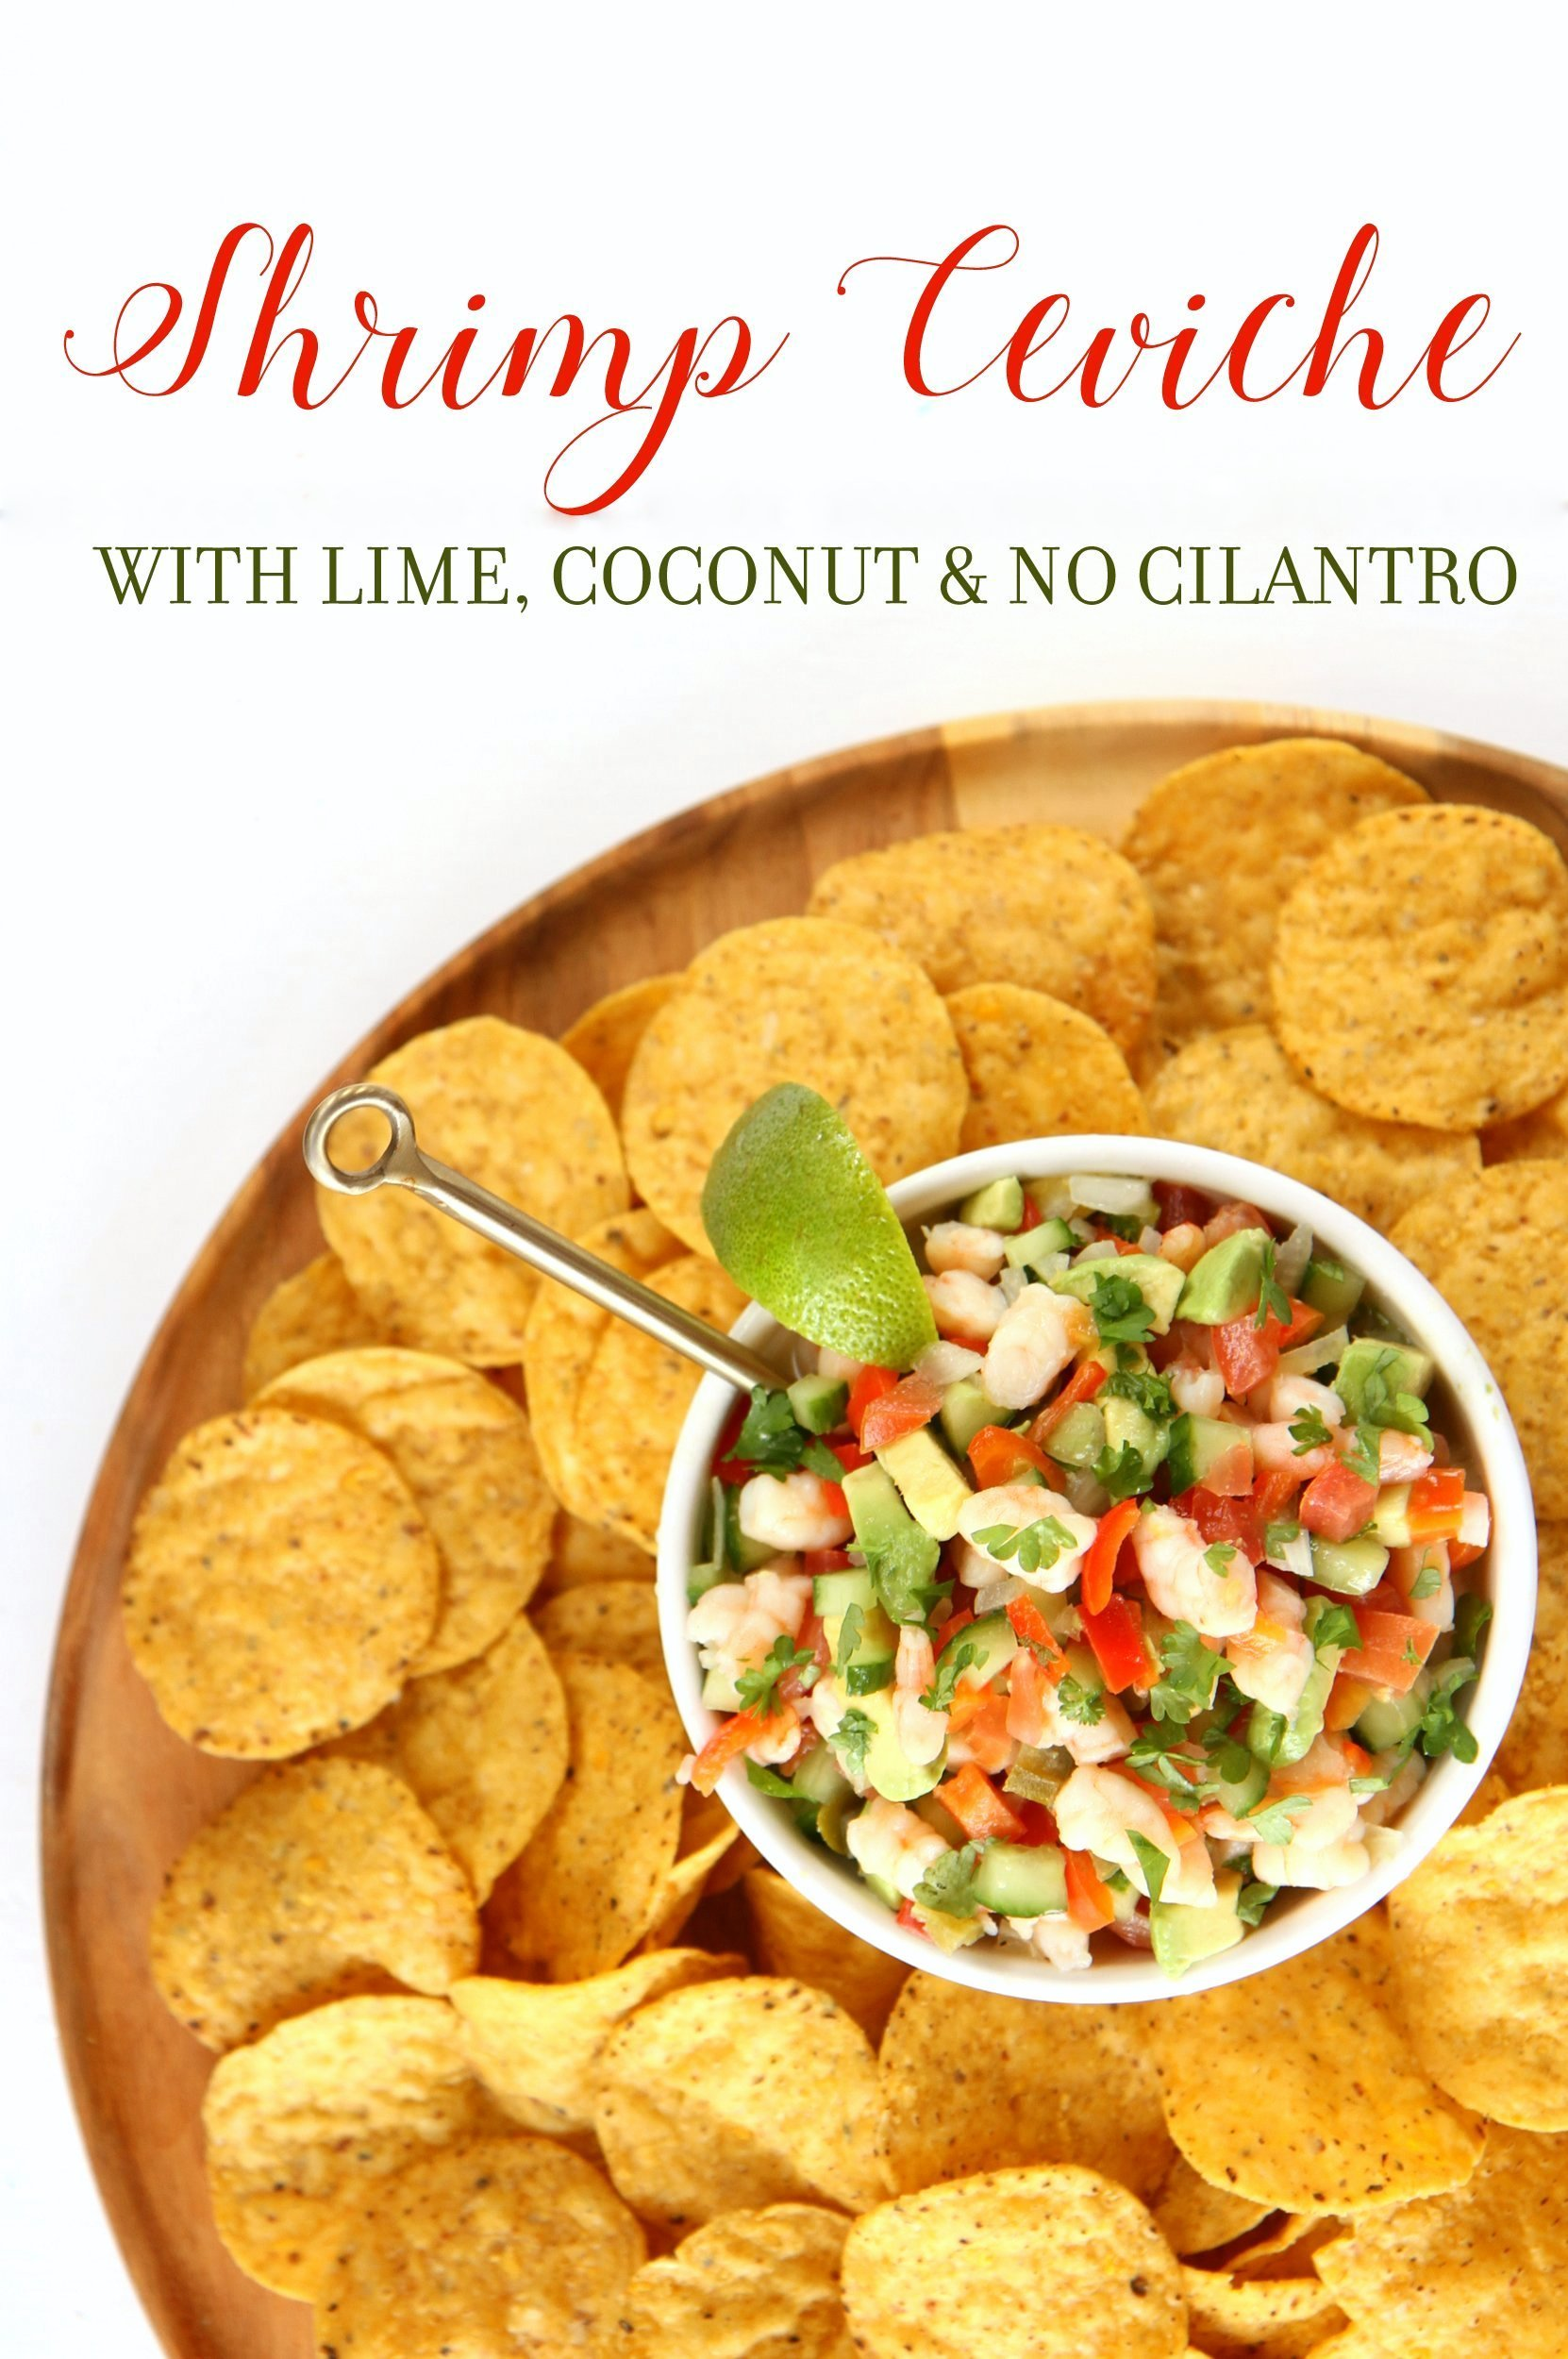 shrimp ceviche with lime, coconut and no cilantro